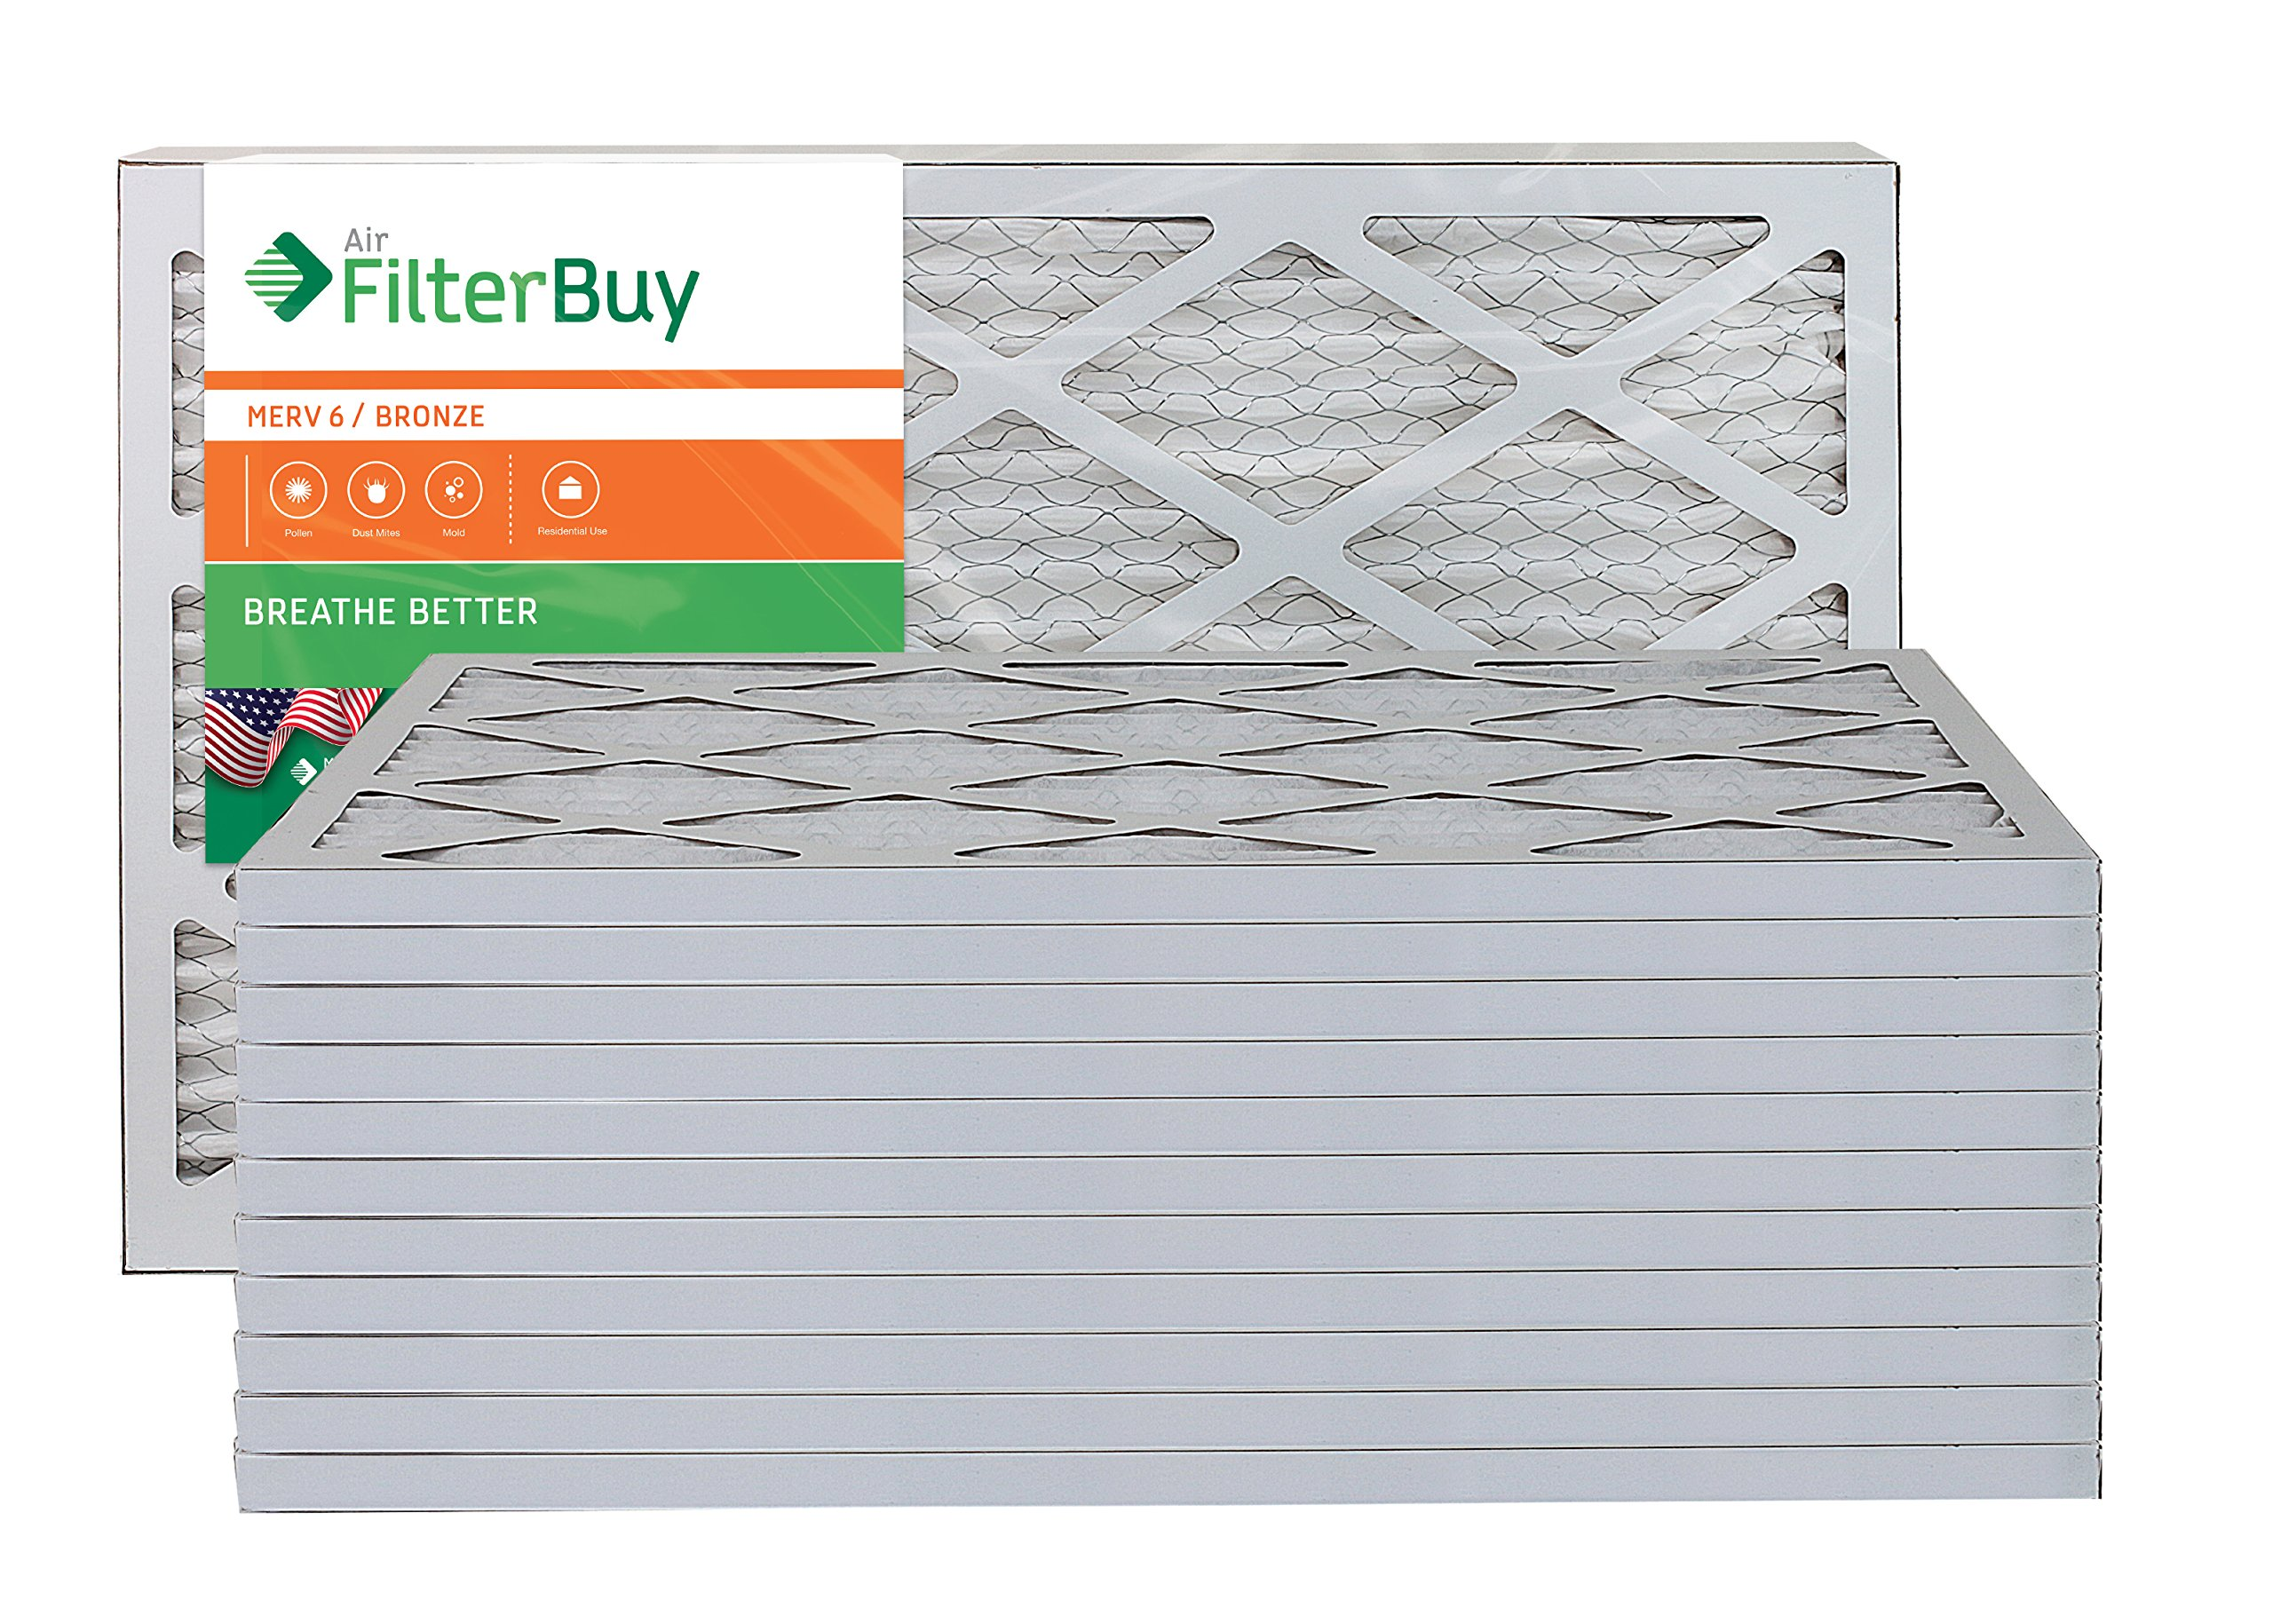 AFB Bronze MERV 6 14x25x1 Pleated AC Furnace Air Filter. Pack of 12 Filters. 100% produced in the USA. by FilterBuy